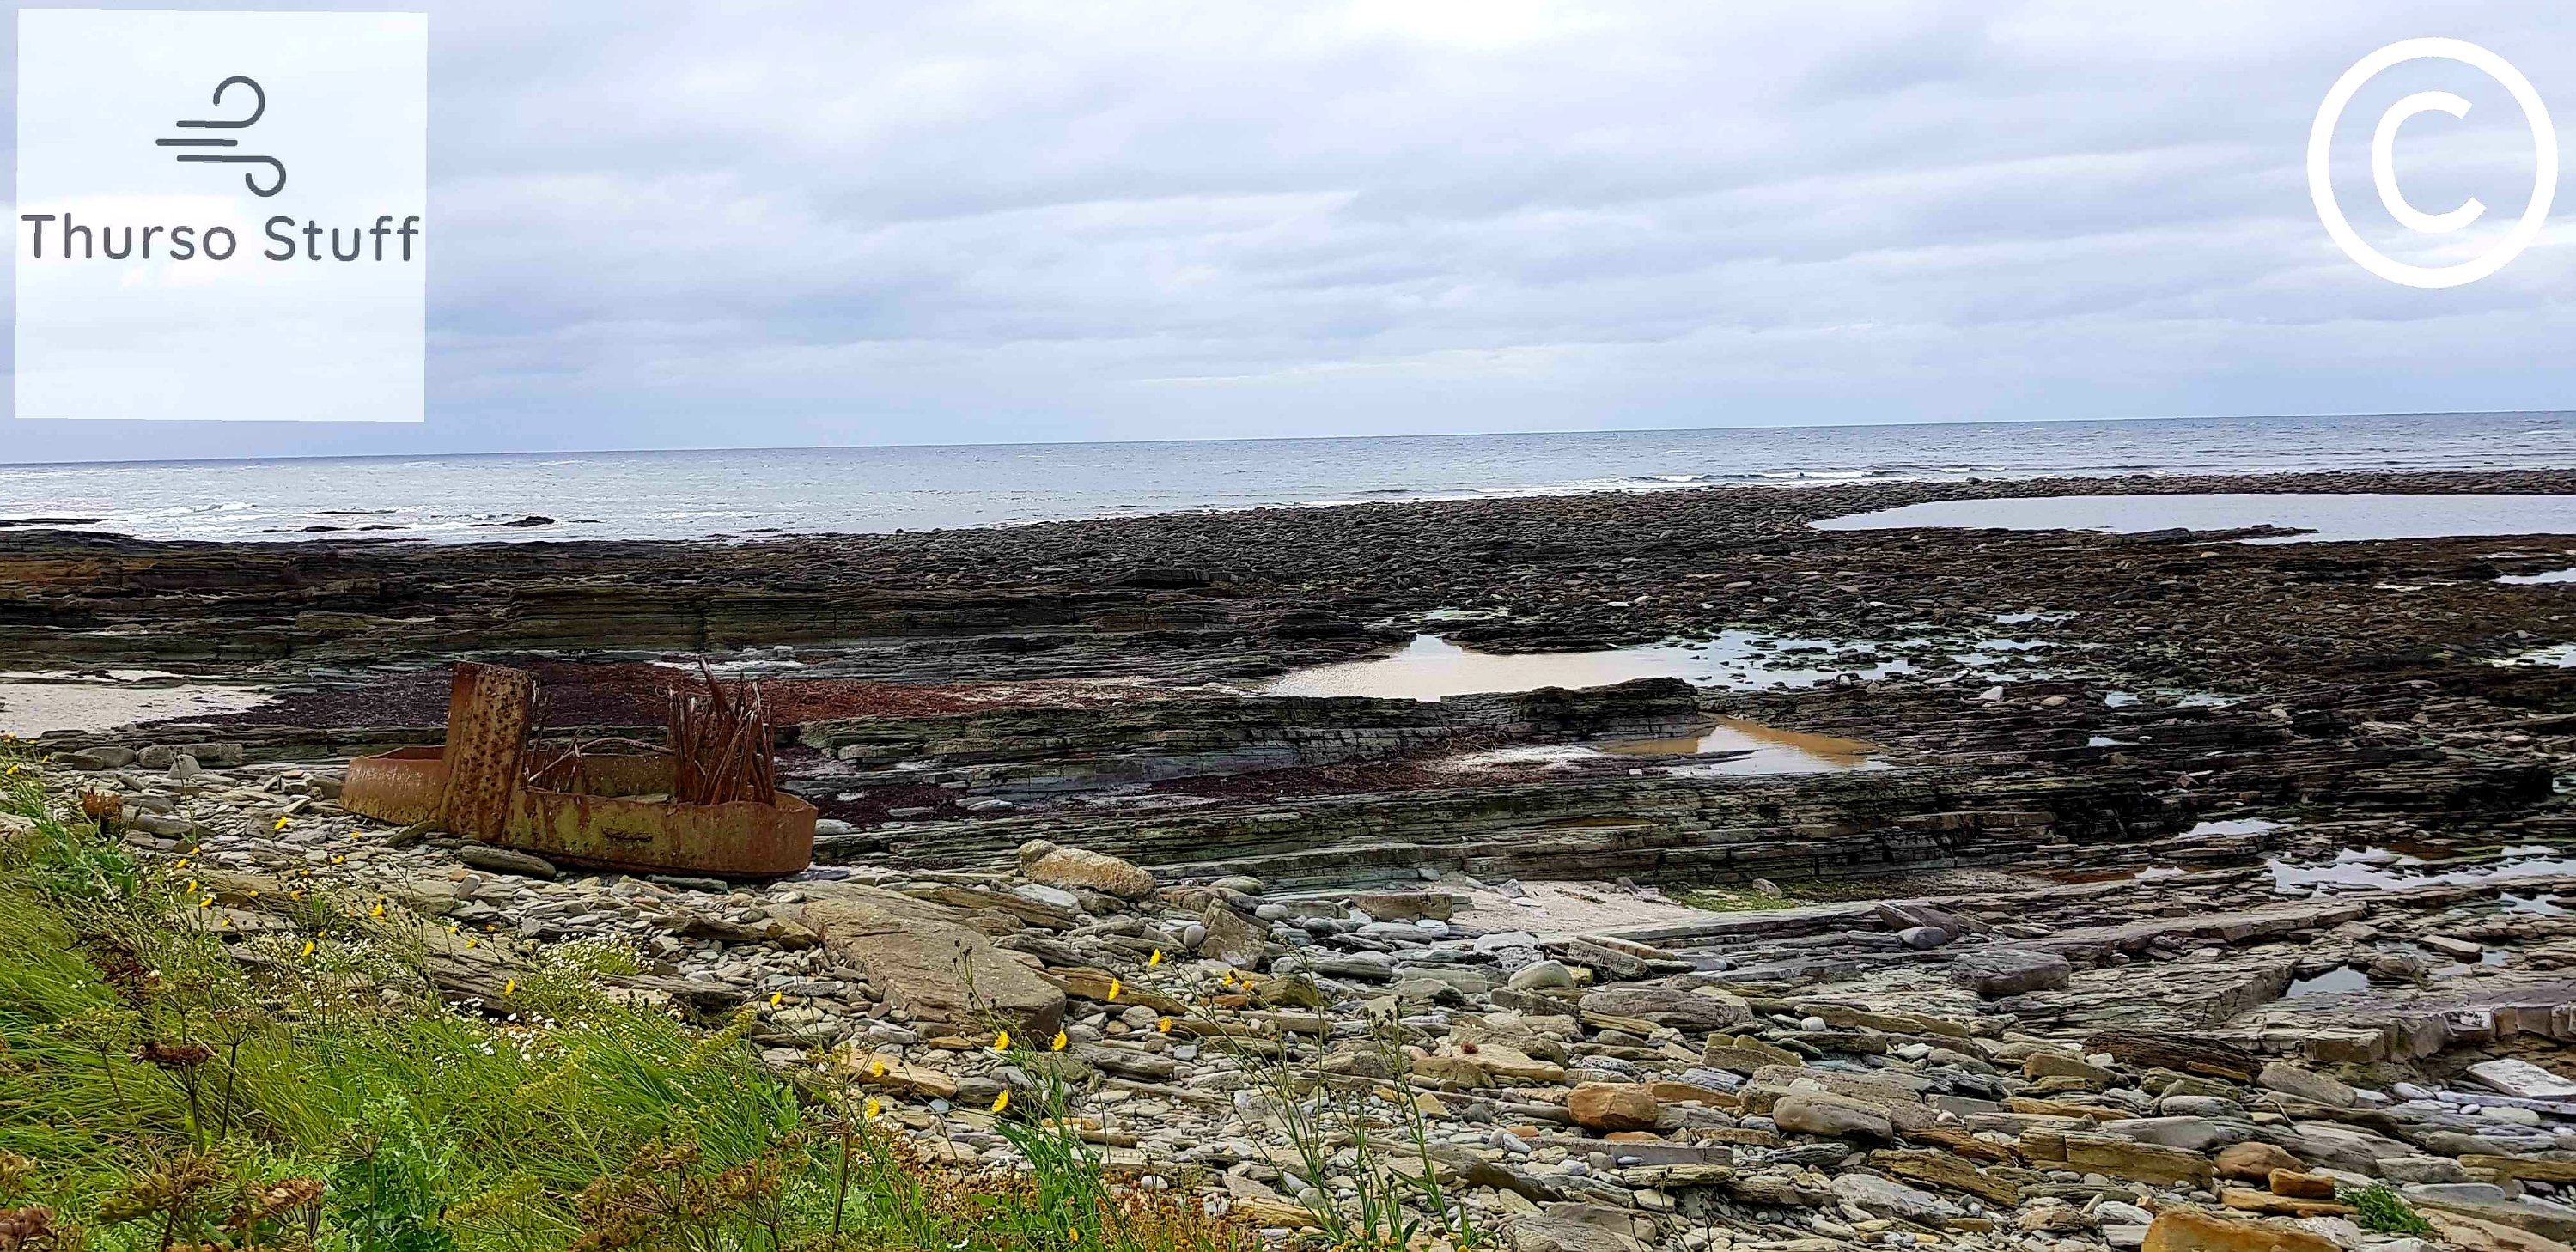 marwick bay, a rocky beach with the sea in the background